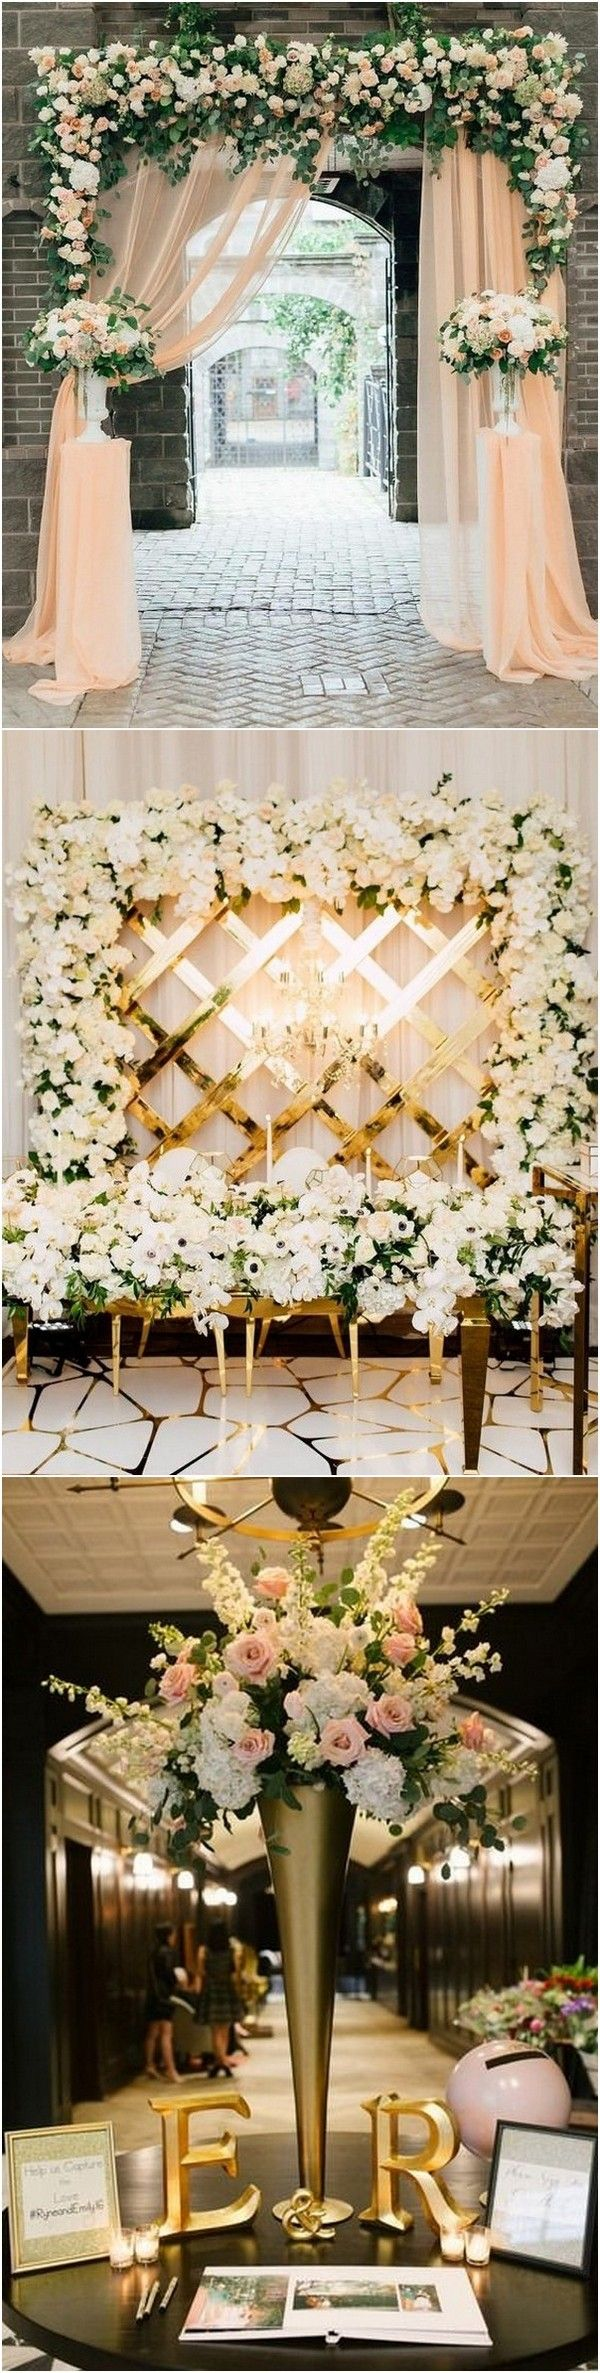 Top 20 Wedding Entrance Decoration Ideas For Your Reception Emmalovesweddings Wedding Reception Entrance Wedding Flower Decorations Wedding Entrance